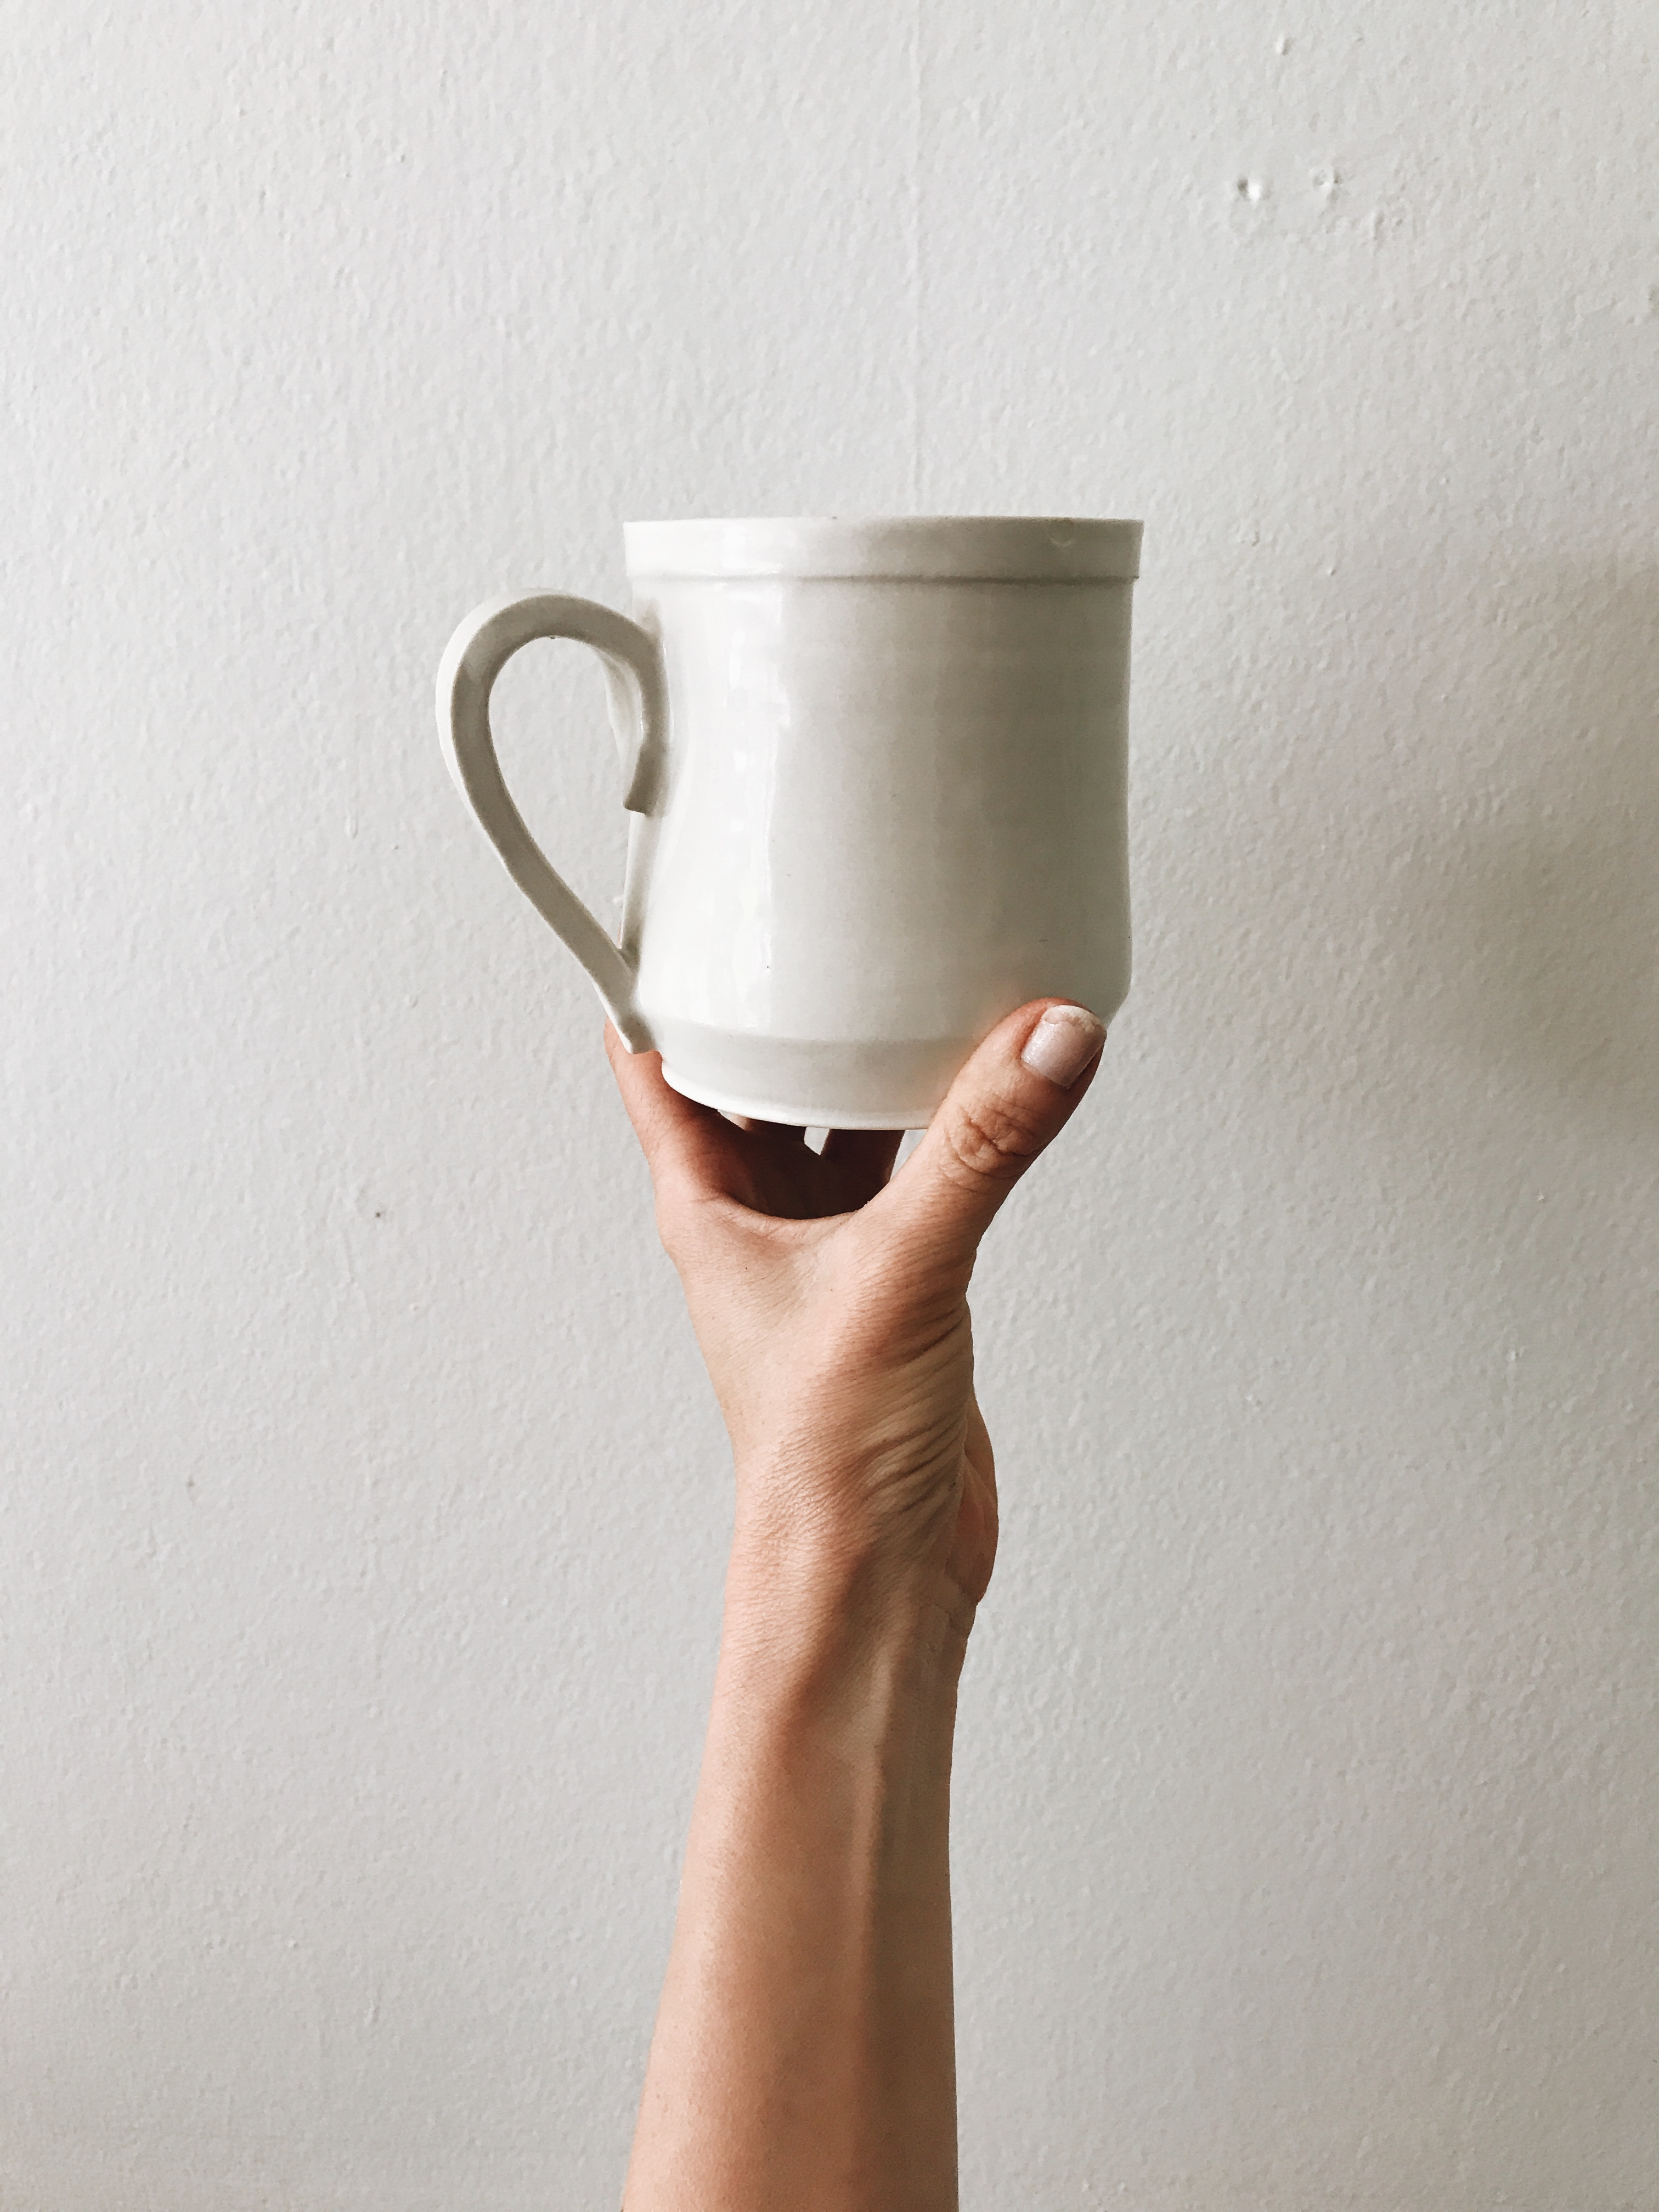 Dining Home Garden My Mug Shots Simmer Bev Cooks Ceramic Coffee Mugs Mug That Started It I Believe Convivial Makes Coffeemugs But Y Have A Slew furniture Beautiful Ceramic Mugs